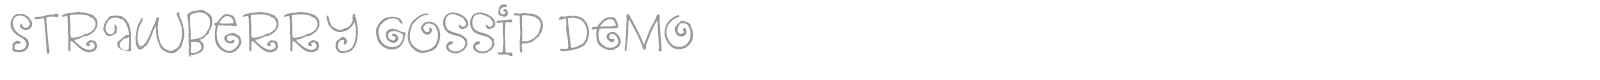 Font Strawberry Gossip